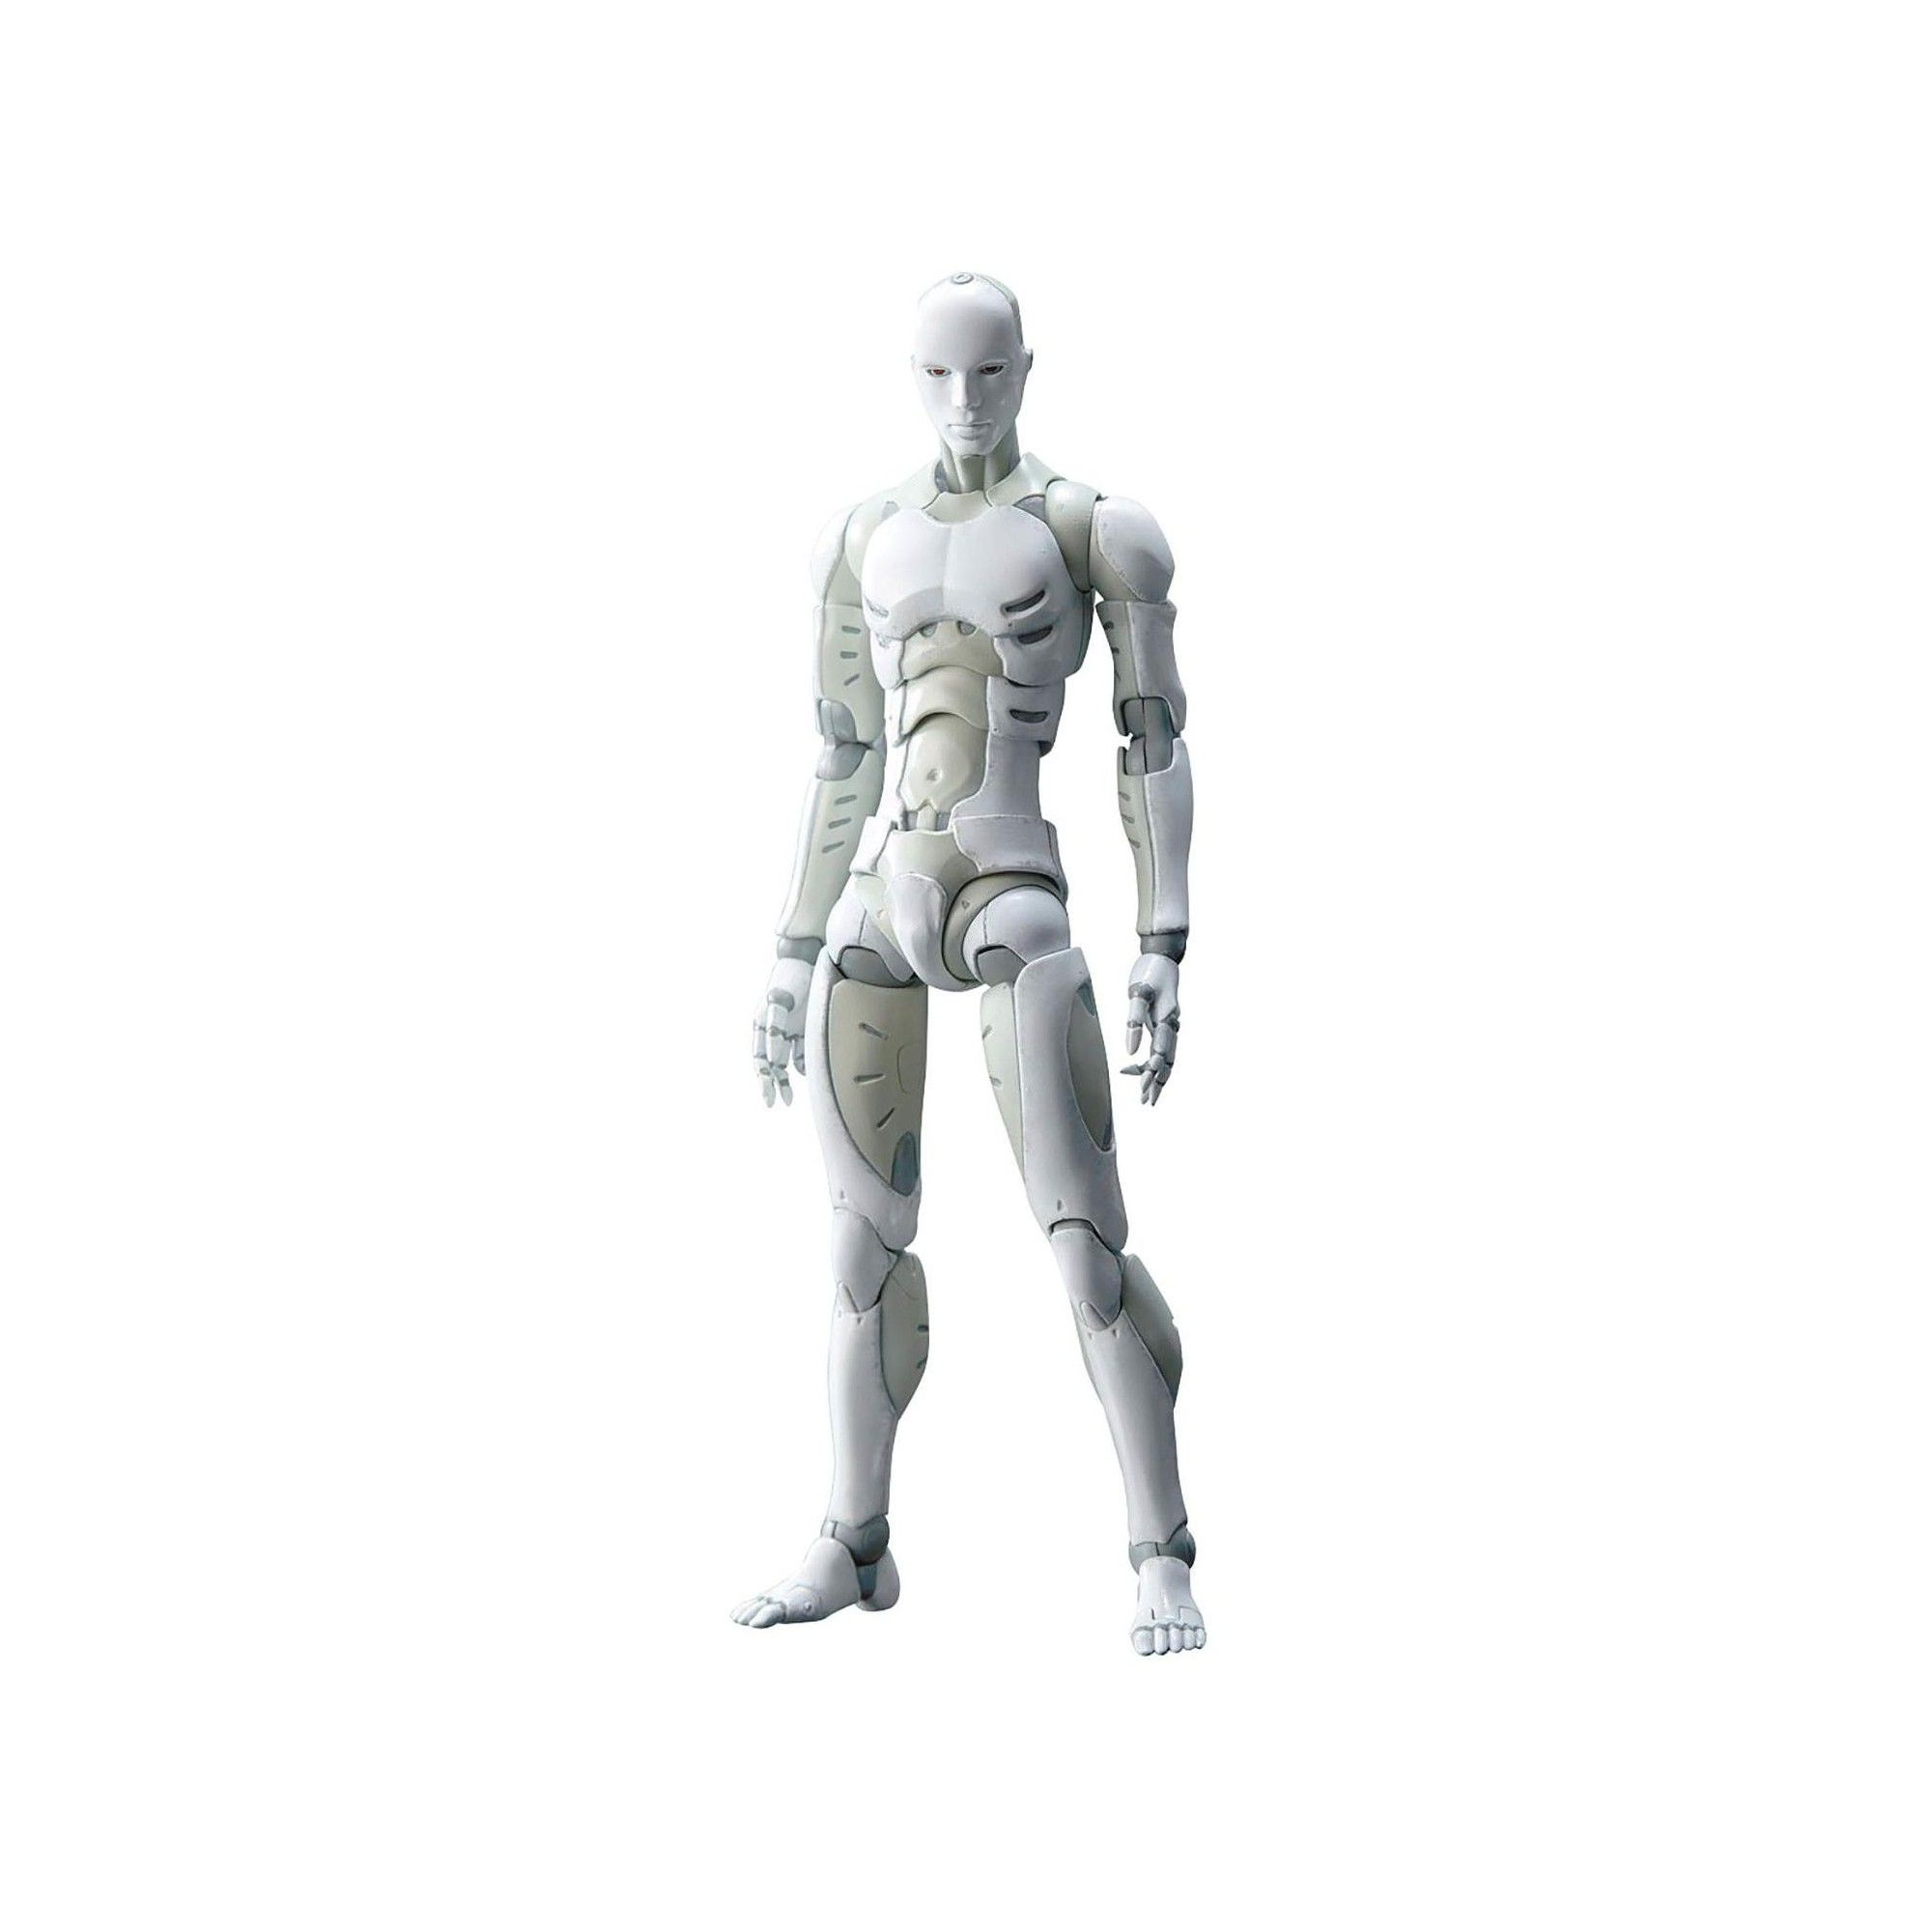 Toa Heavy Industries Synthetic Human Action Figure In 2020